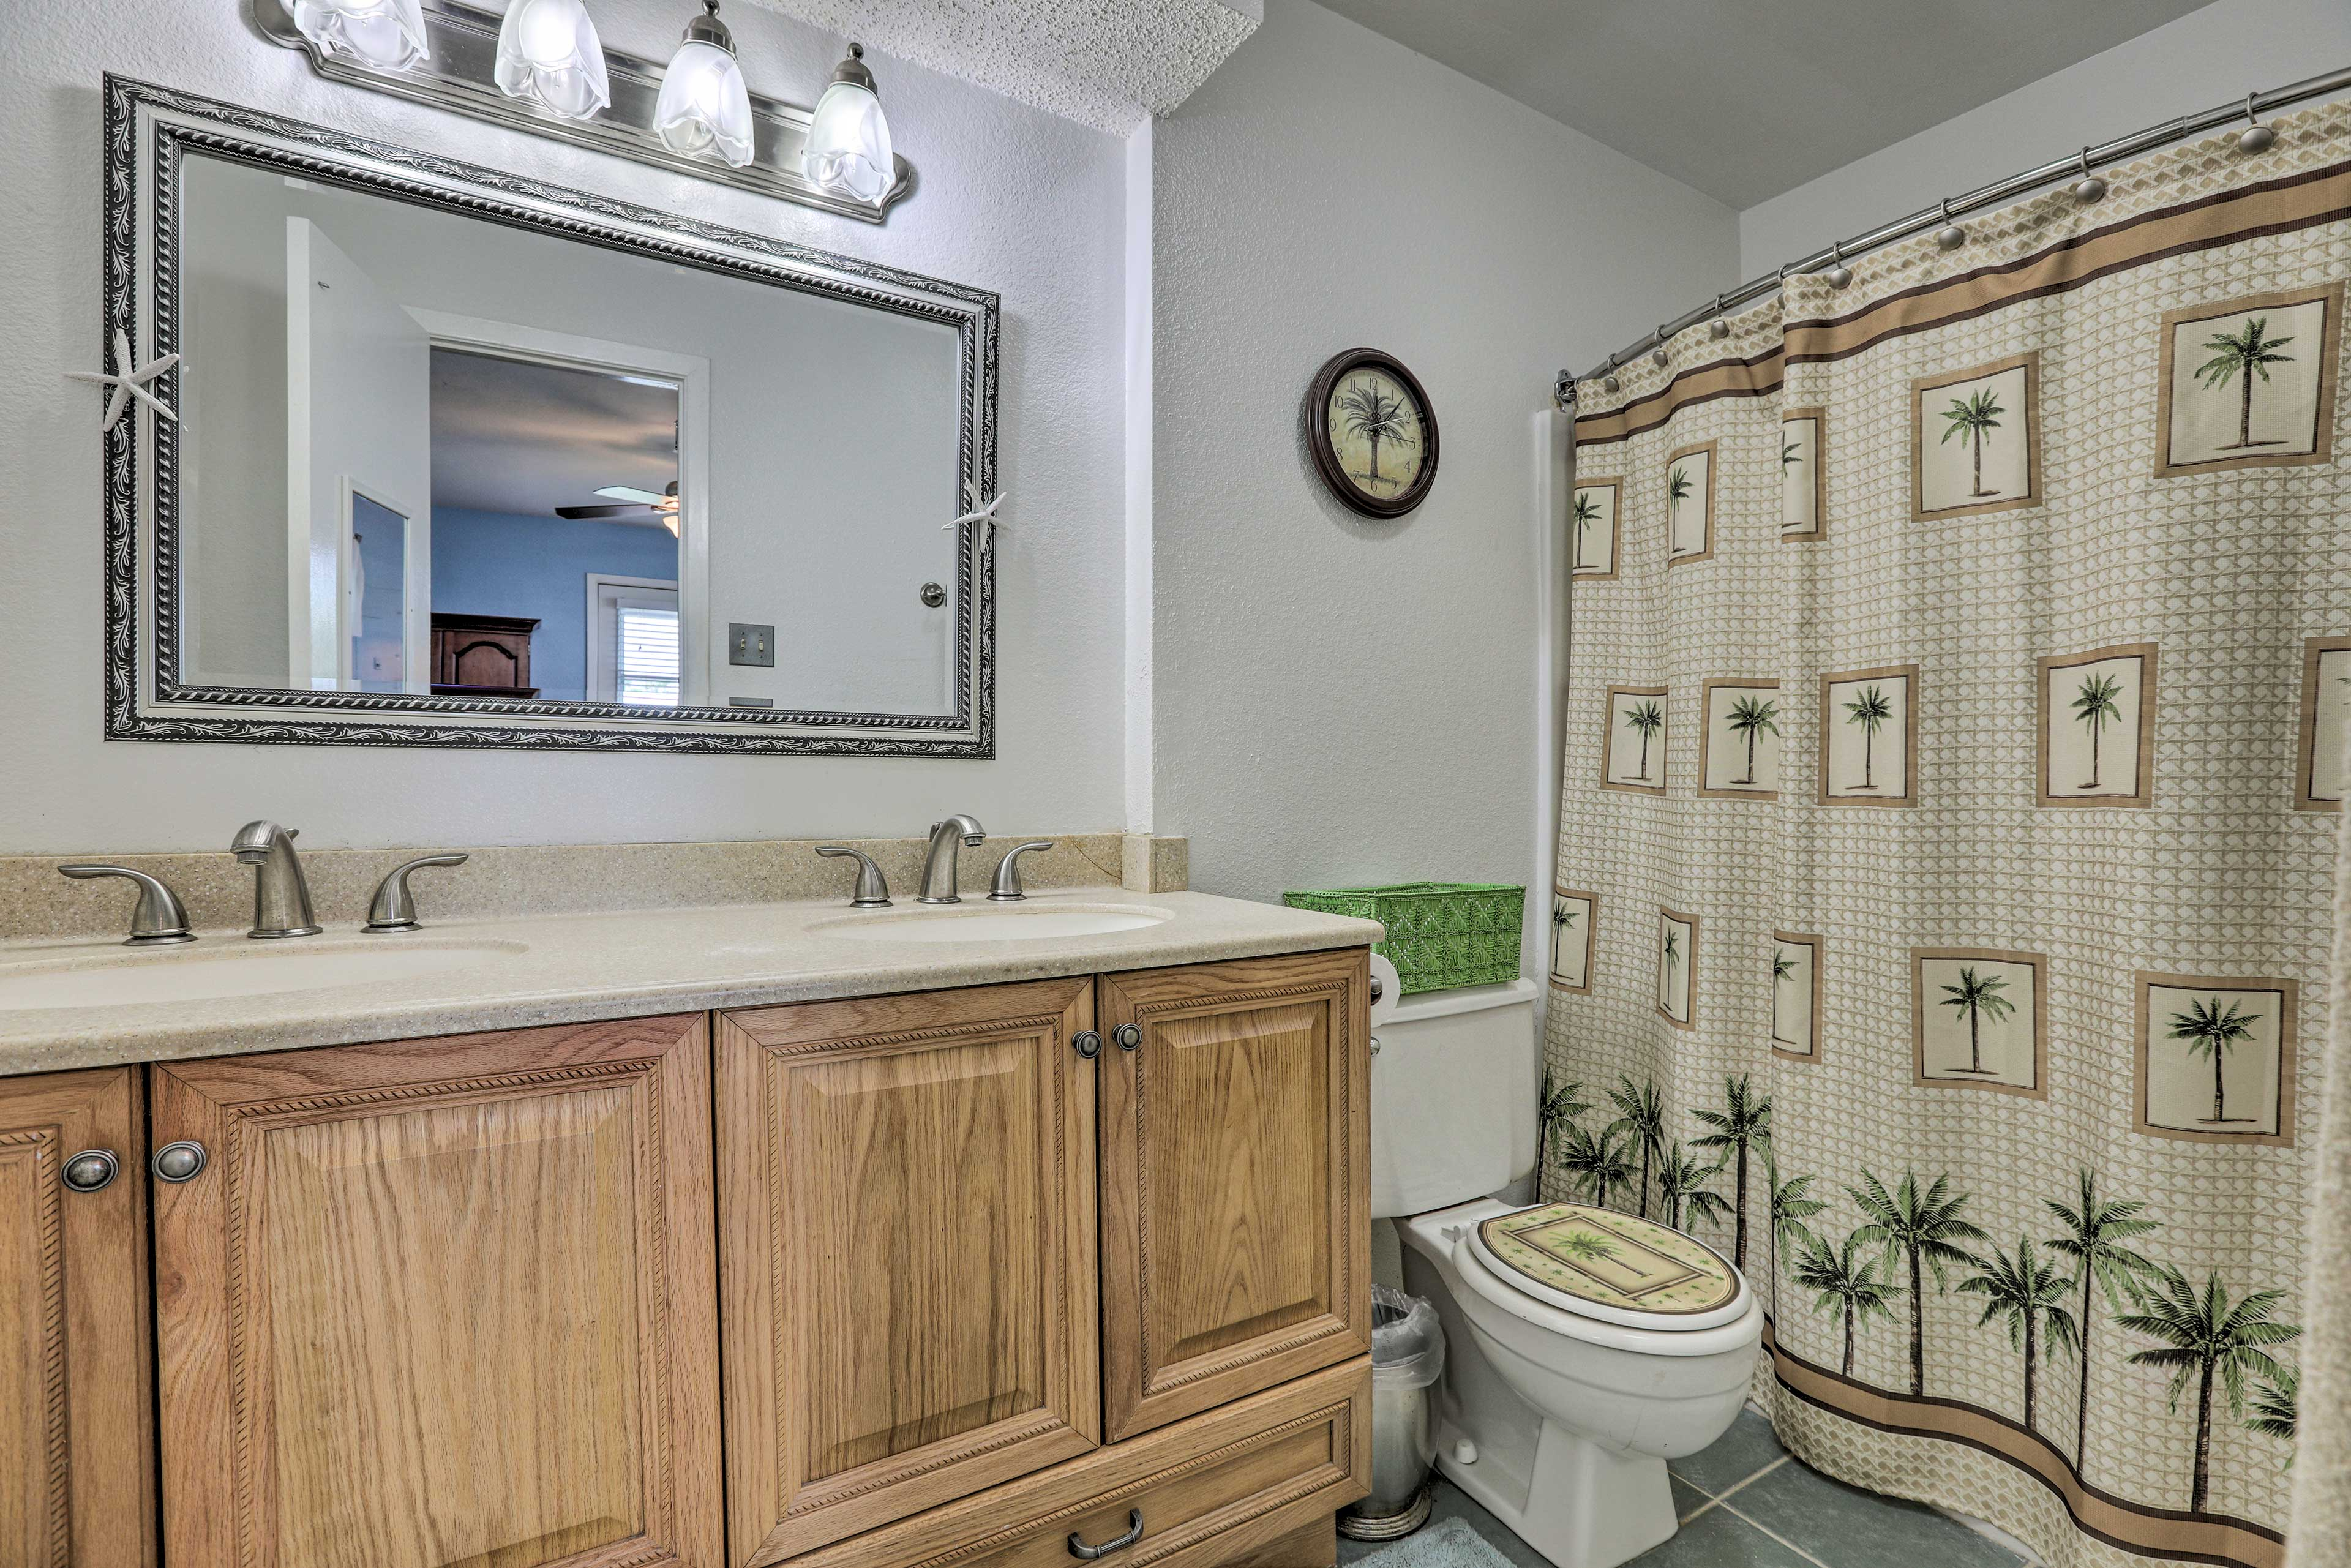 The full bathroom features 2 sinks and a shower/tub combination.